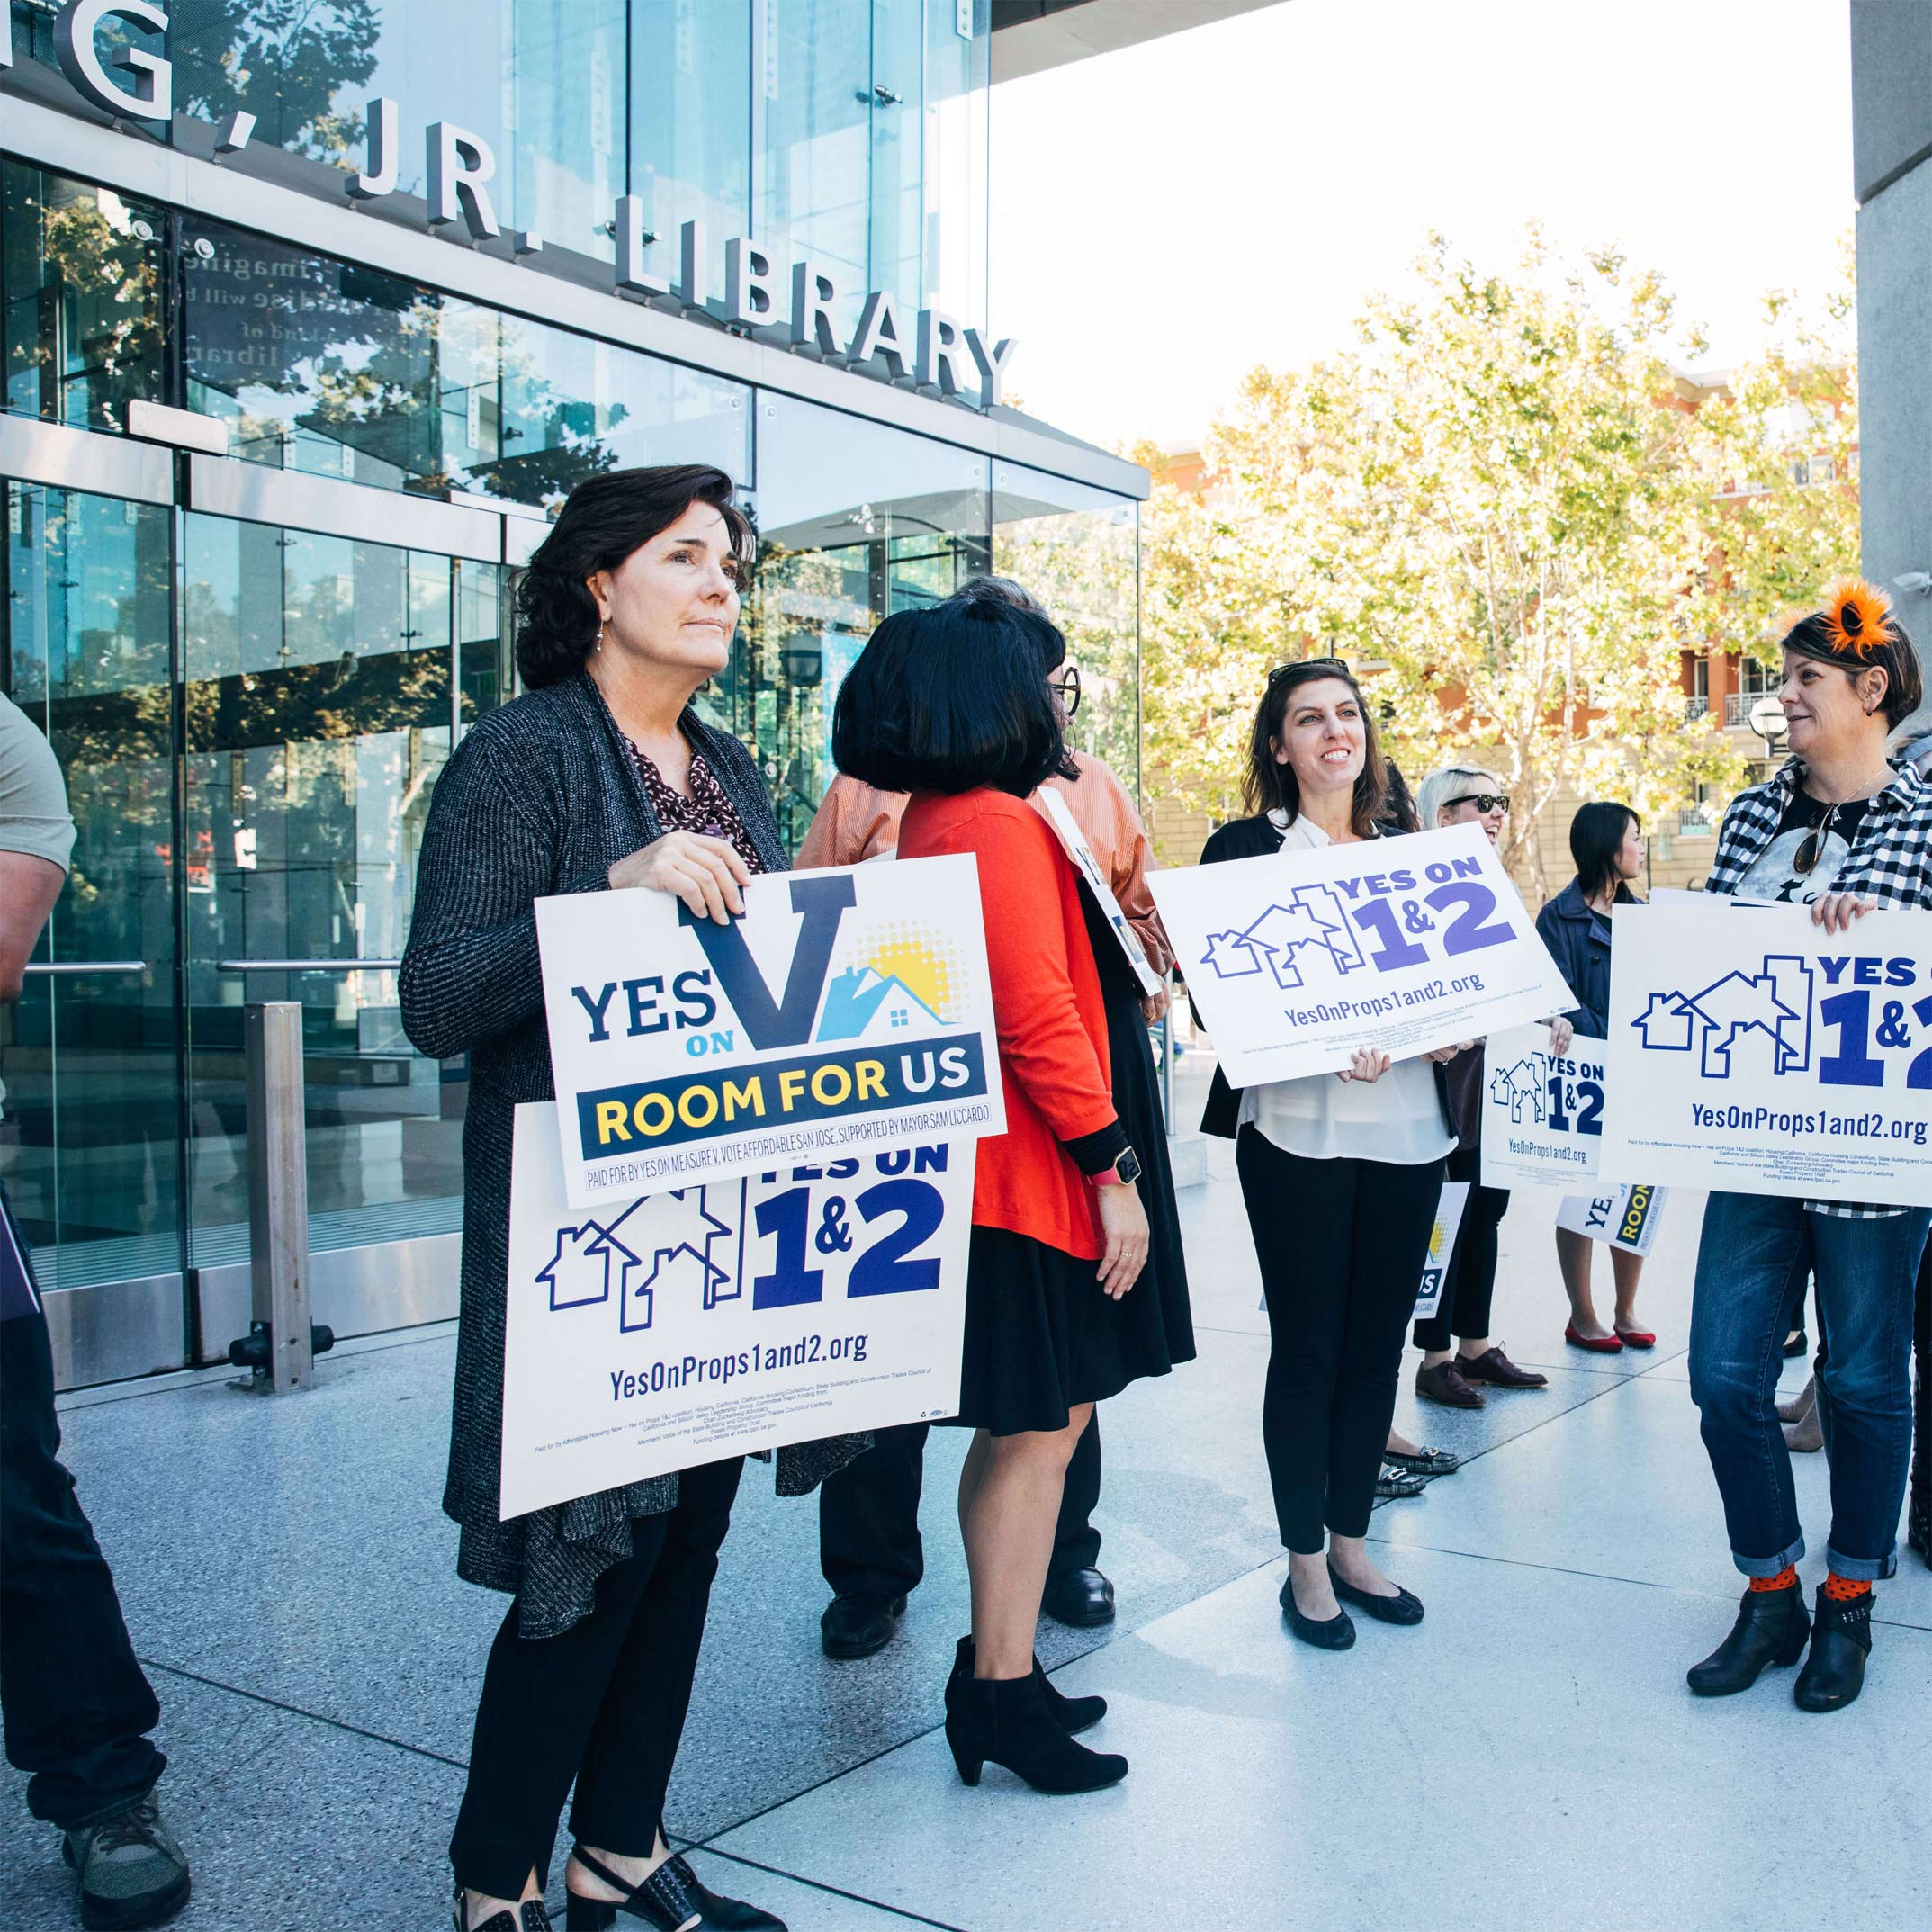 Advocates stand in front of the Library in San Jose in support of ballot initiatives Measure V, and Propositions 1& 2 that support affordable housing in Santa Clara County.